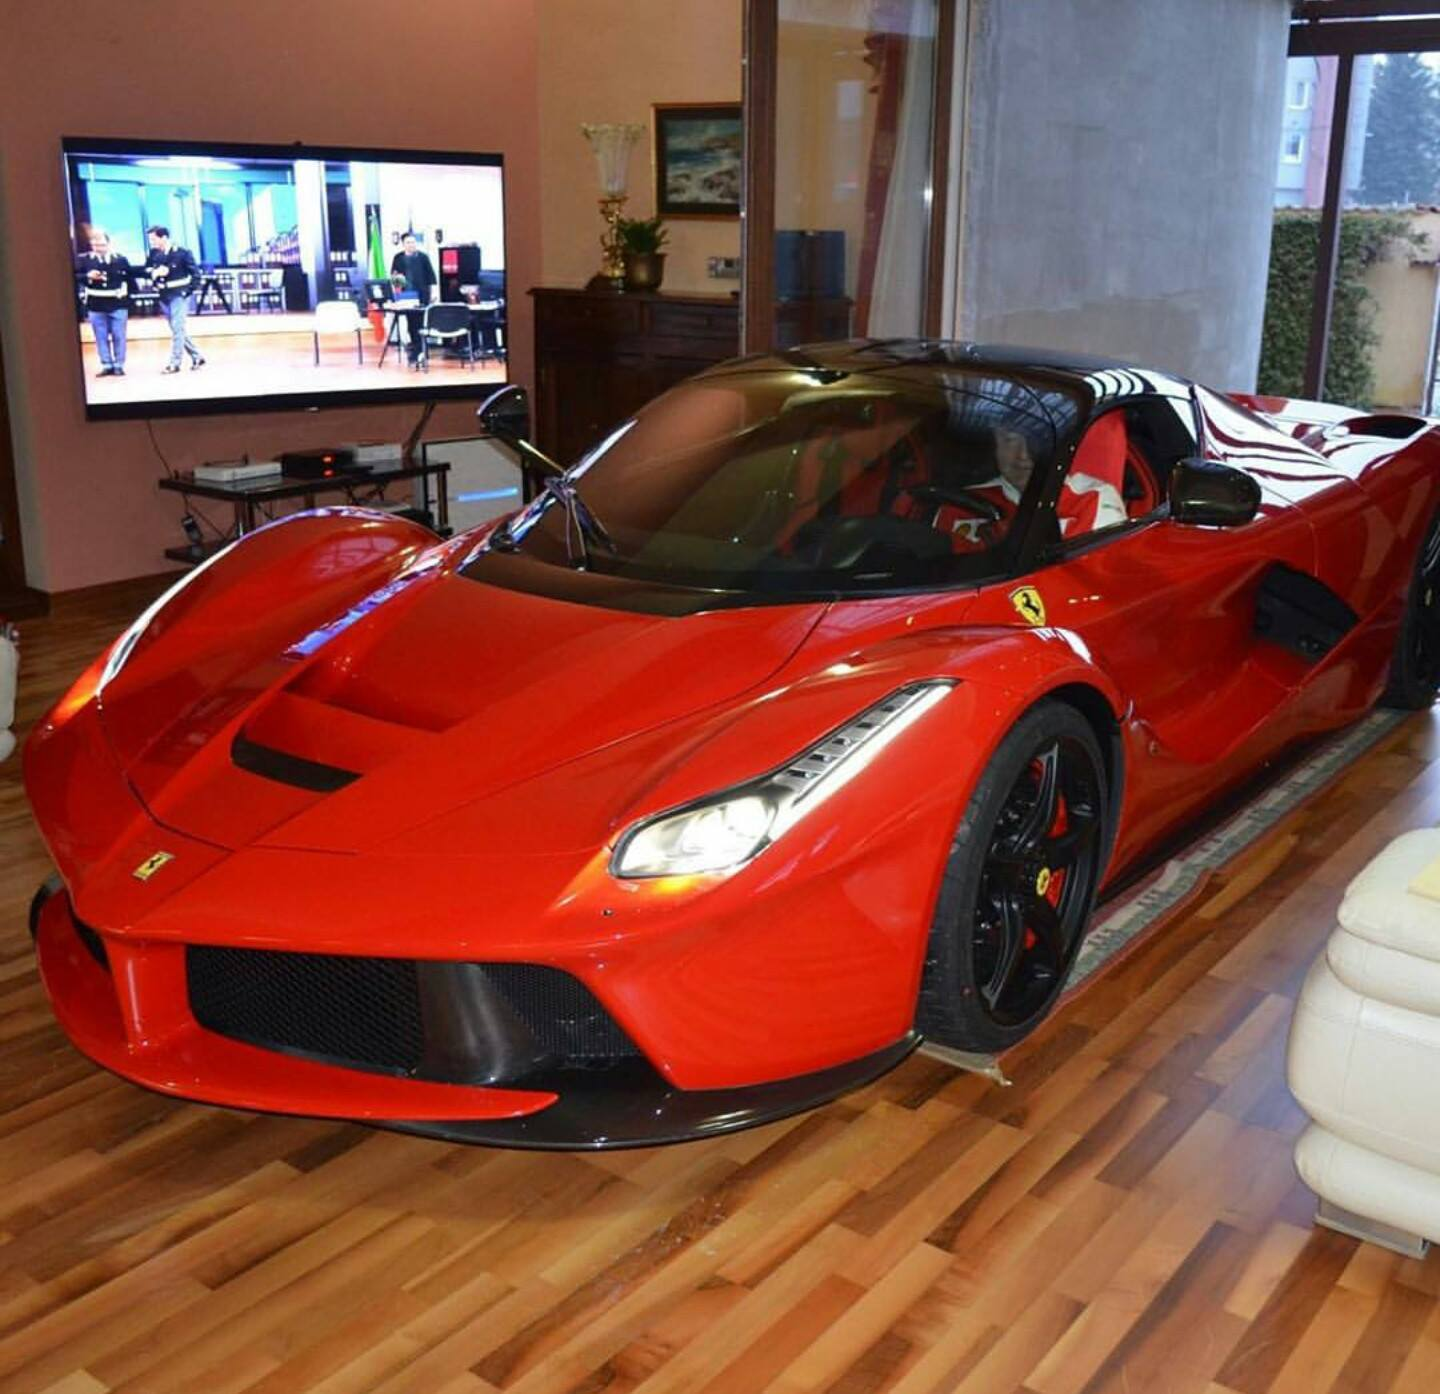 Epic Ferrari LaFerrari Living Room in Slovakia